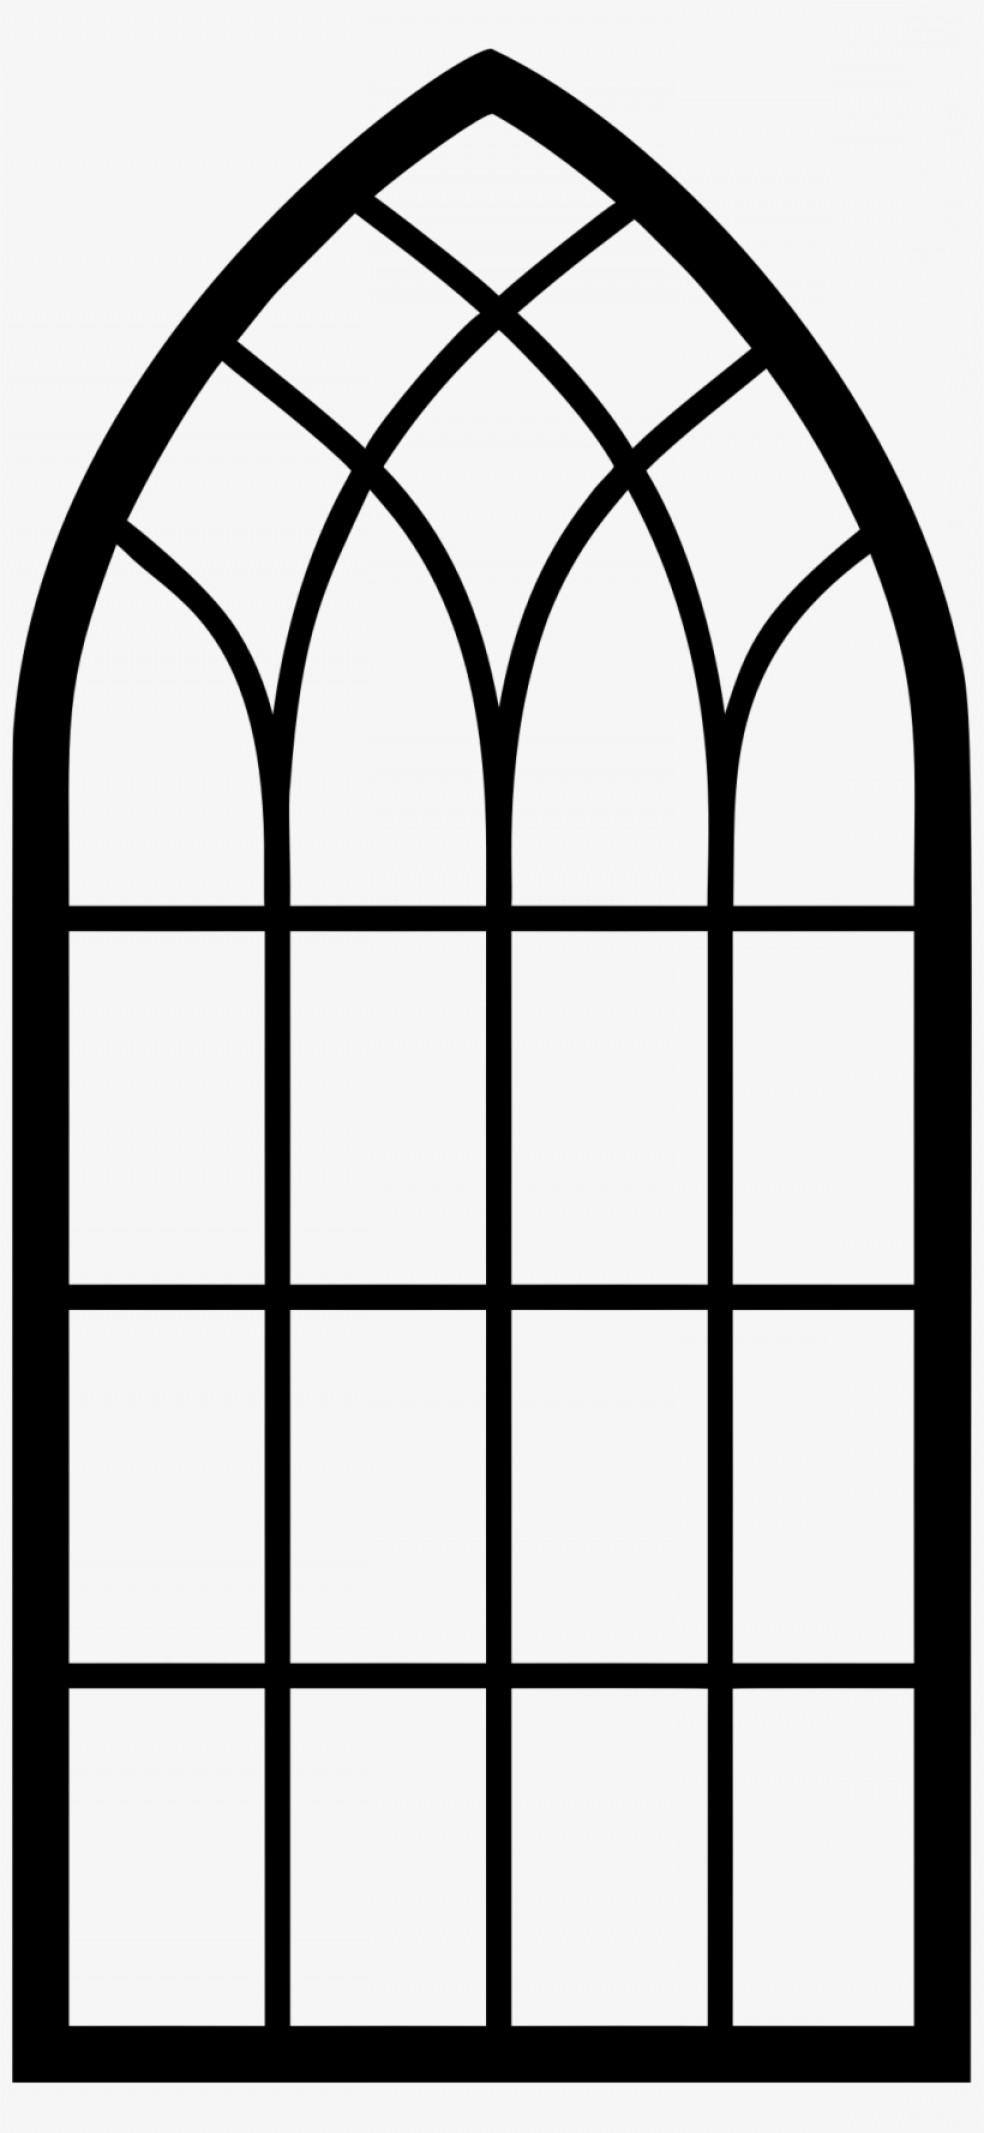 Arch window clipart jpg library download Uqattieqchurch Window Arch Window Clipart Silhouette | CQRecords jpg library download